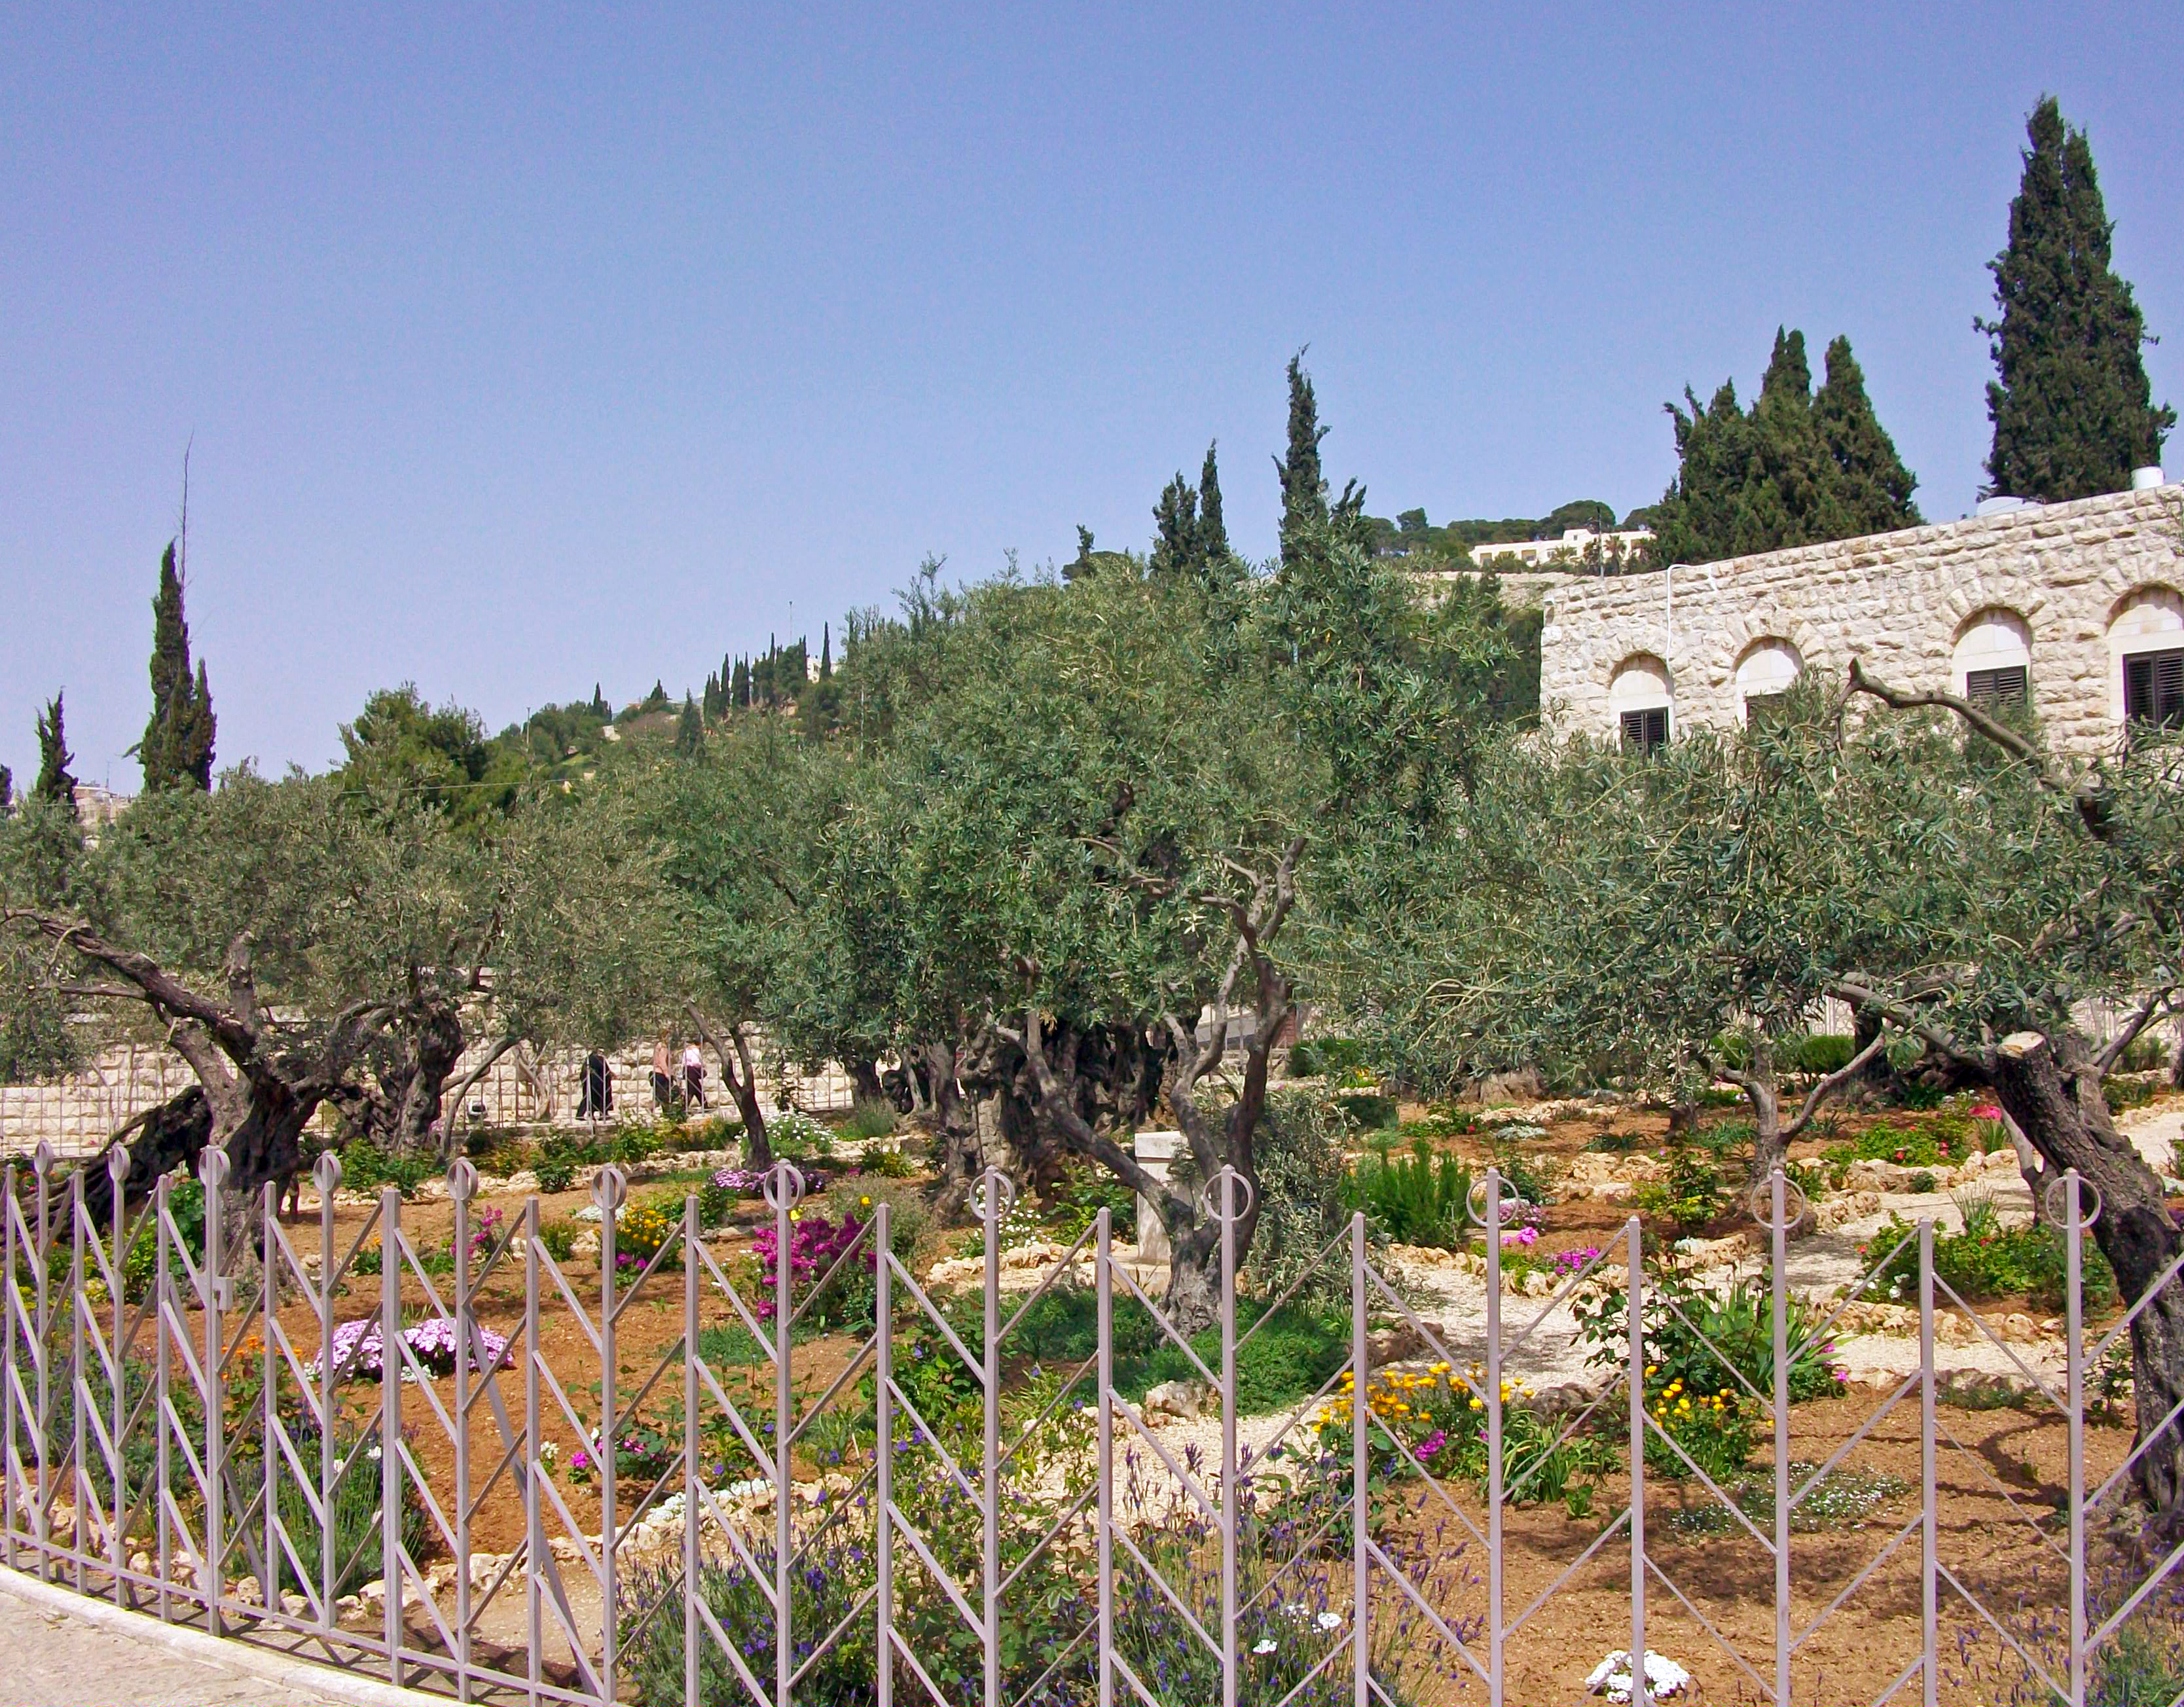 FileGarden of Gethsemane wide view from southwest cornerjpg